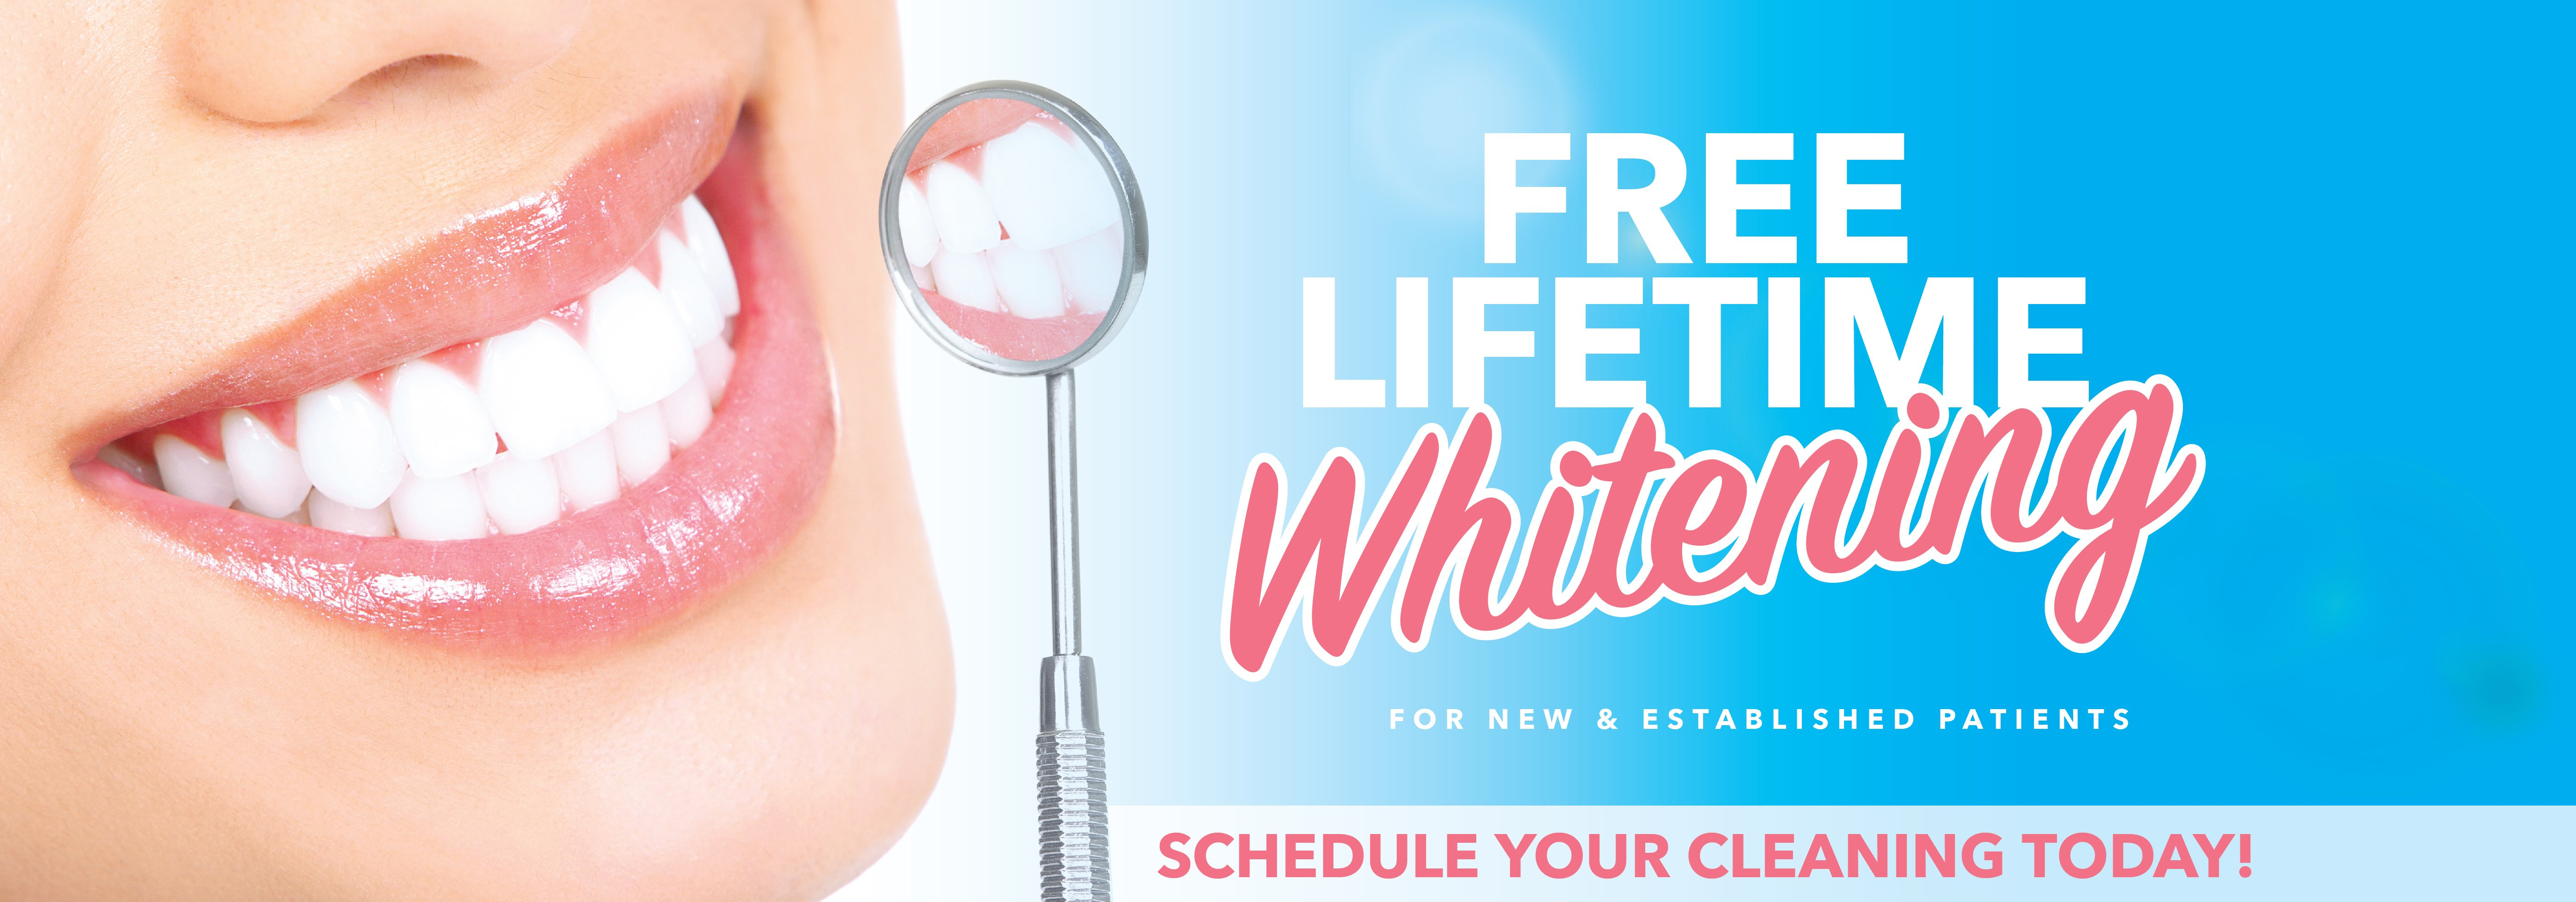 Free-Lifetime-Whitening